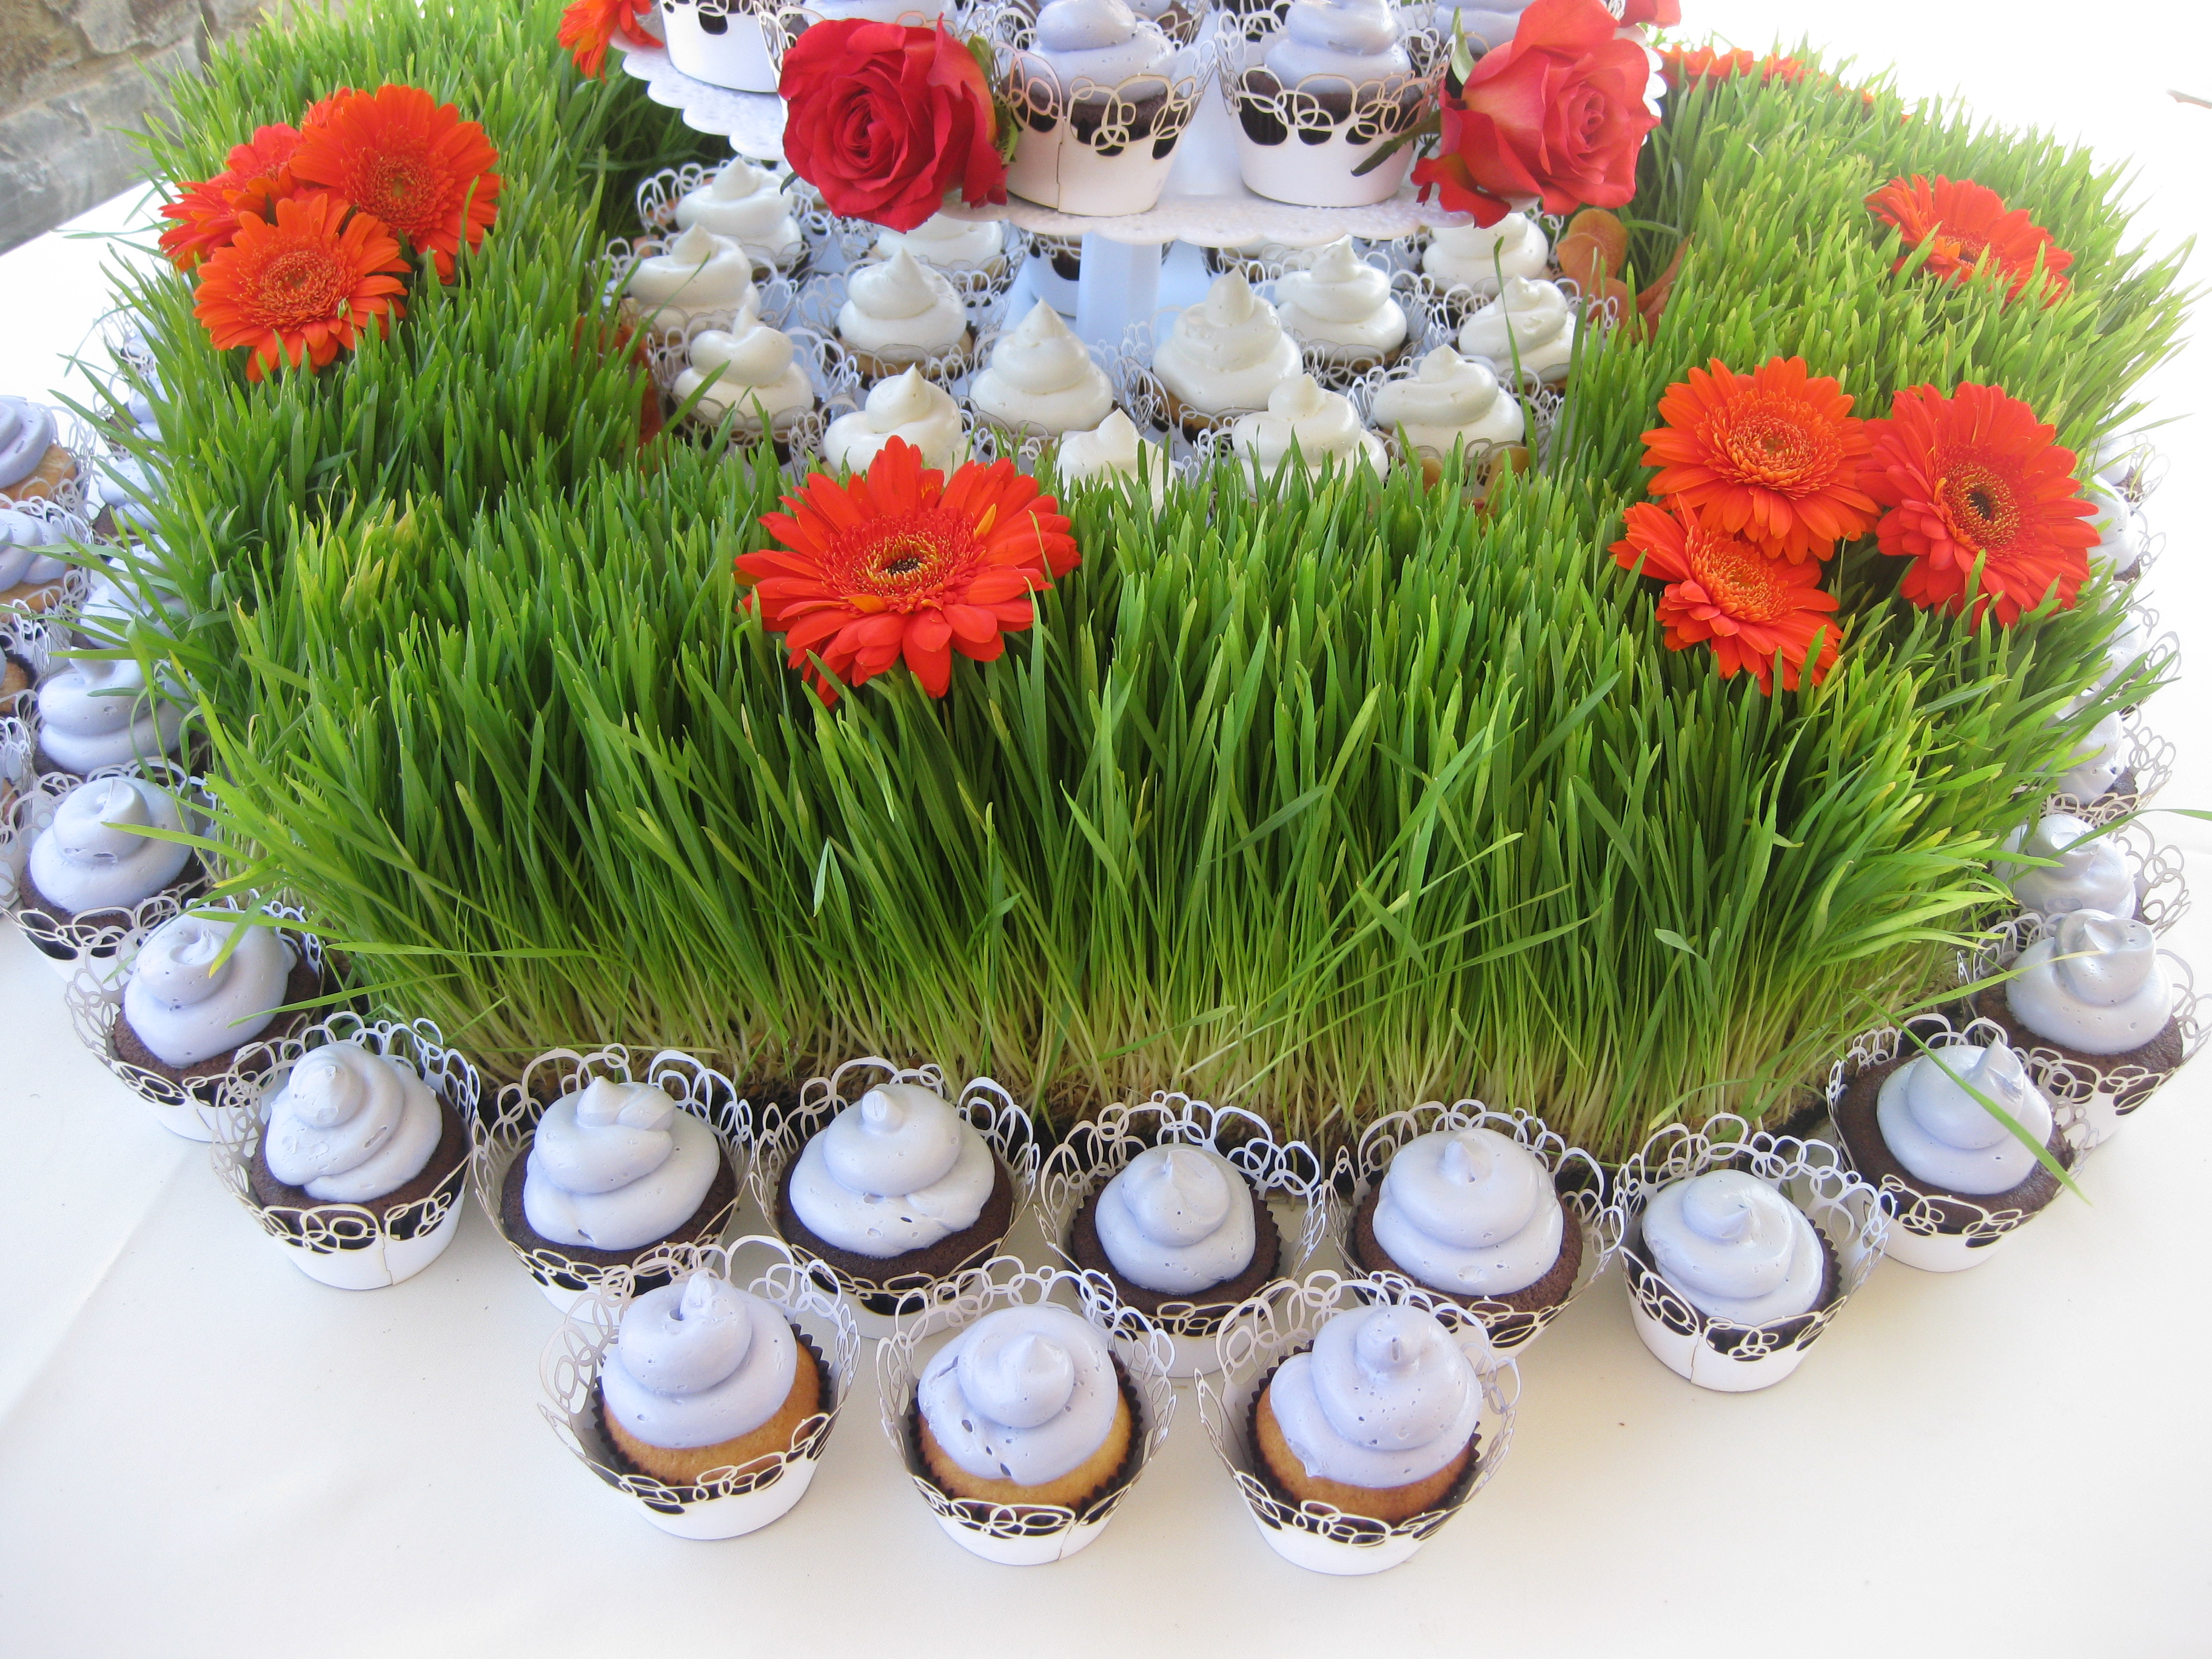 Grace decorated the wheatgrass with fresh flowers.